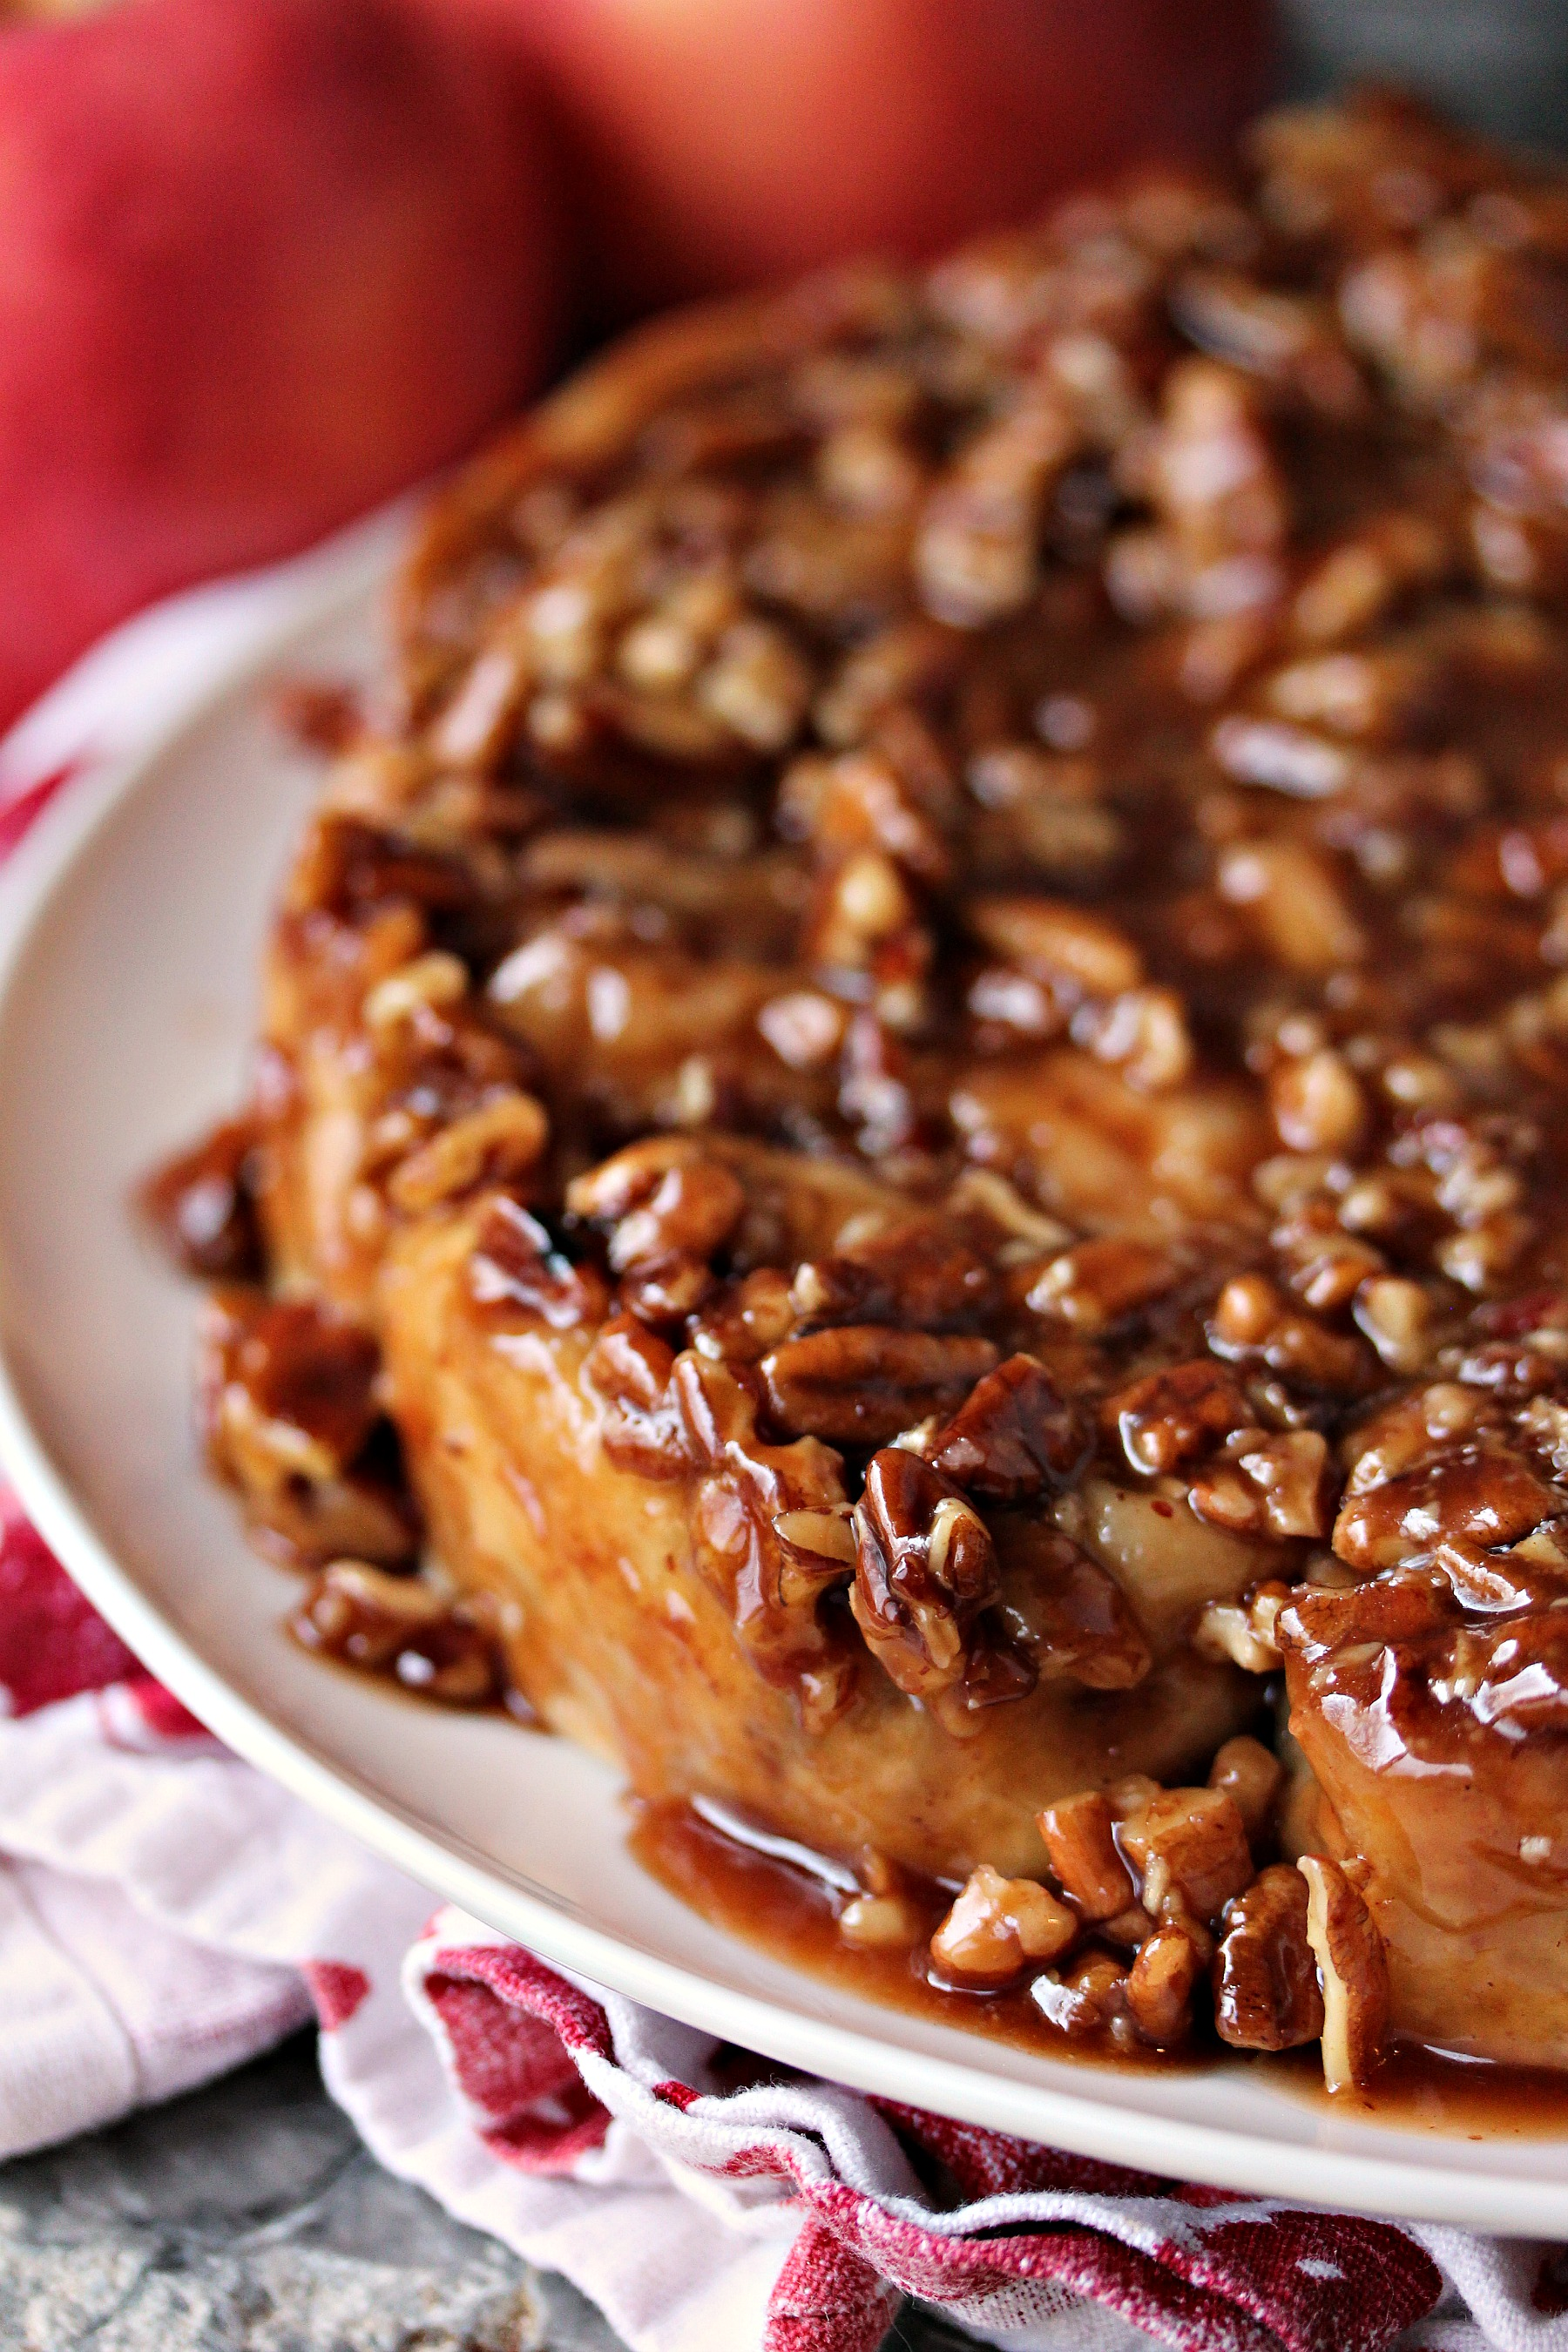 ... pecans and caramel for the most amazing breakfast you will ever eat